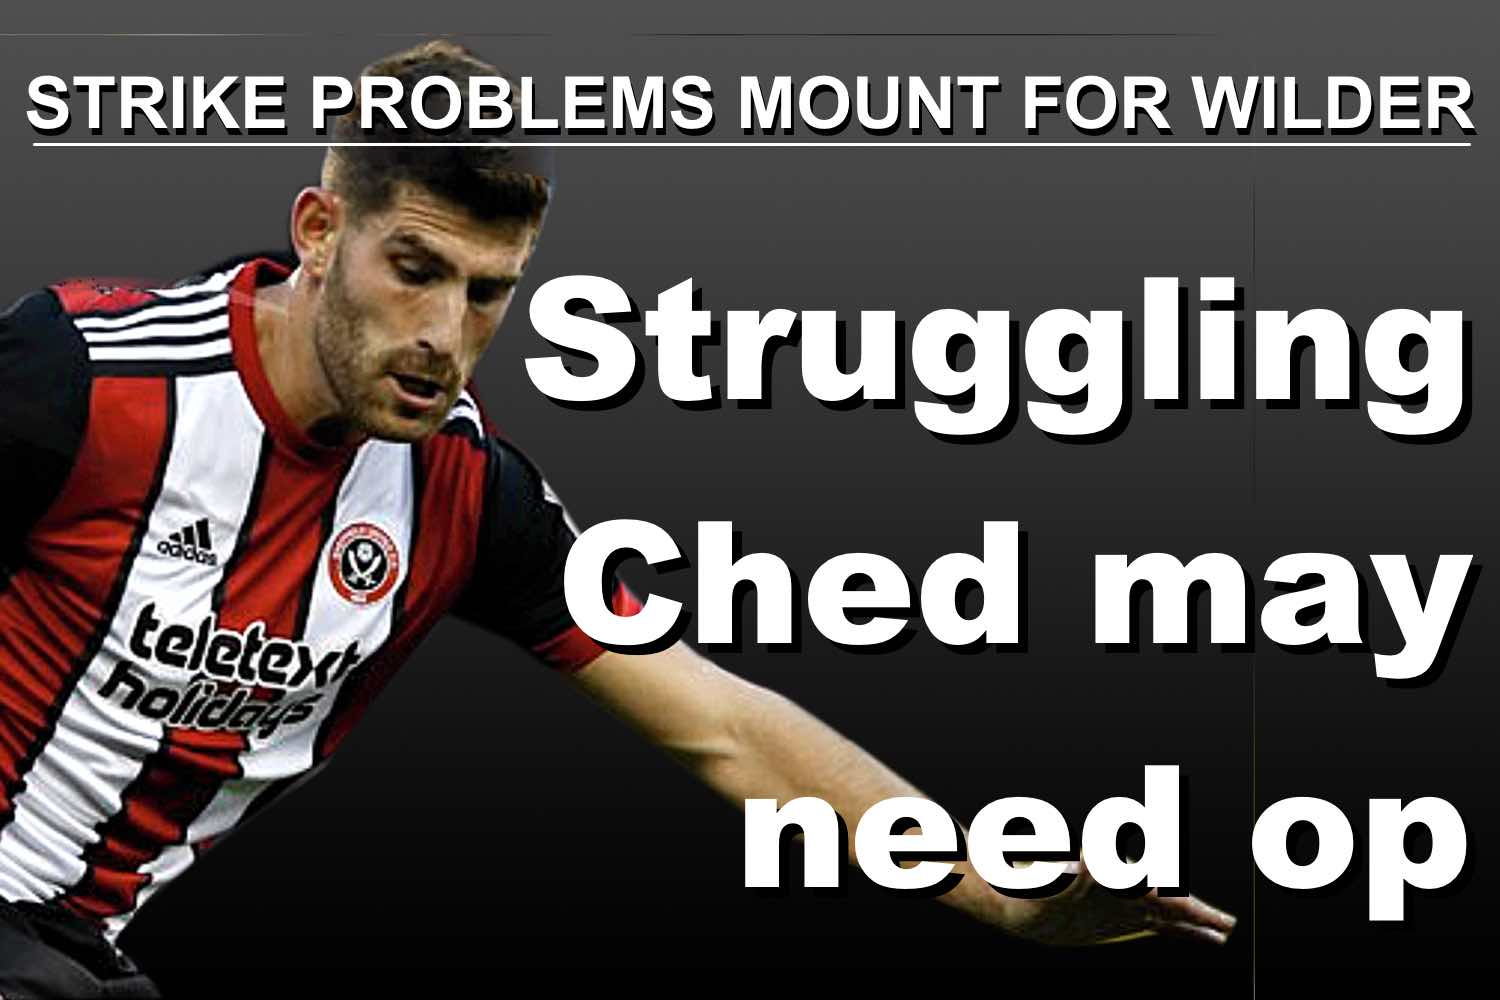 Sheffield United blow as it emerges struggling striker Ched Evans may need surgery